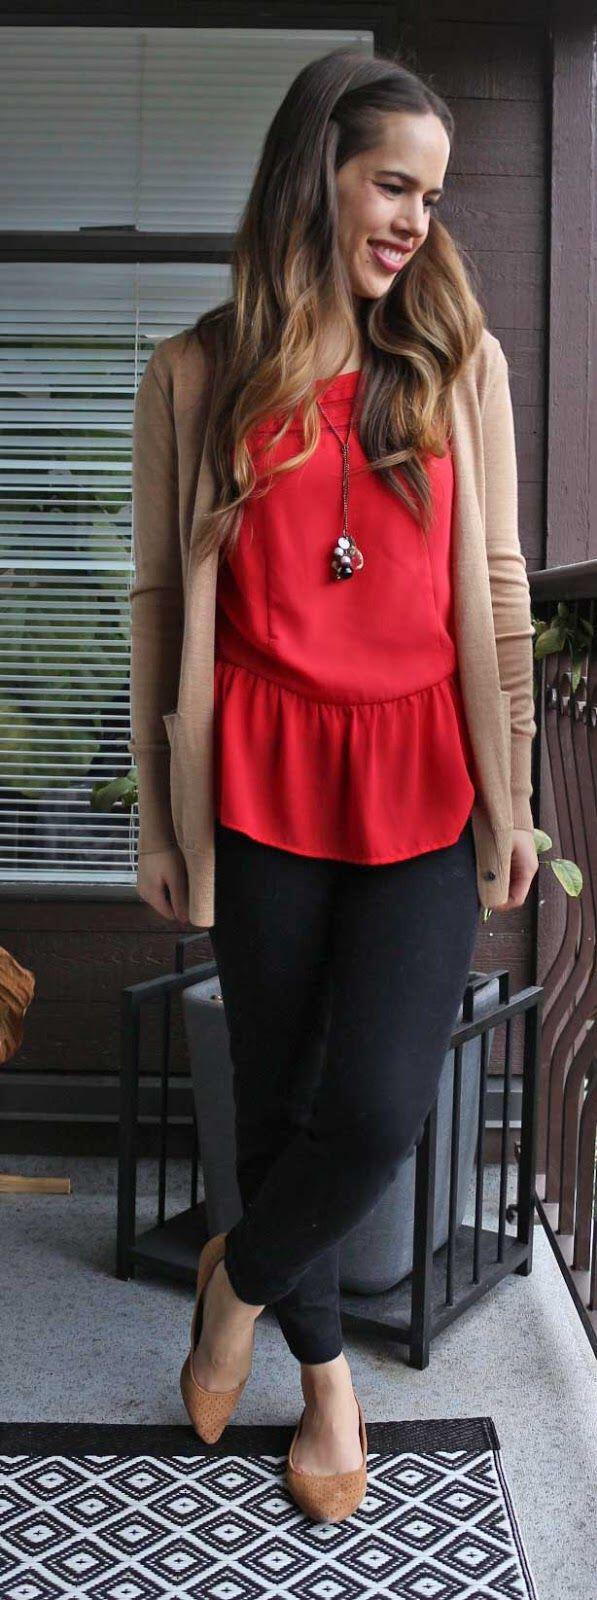 10 ways to wear a red top work outfit and look good 2 - 10 ways to wear a red top work outfit and look good